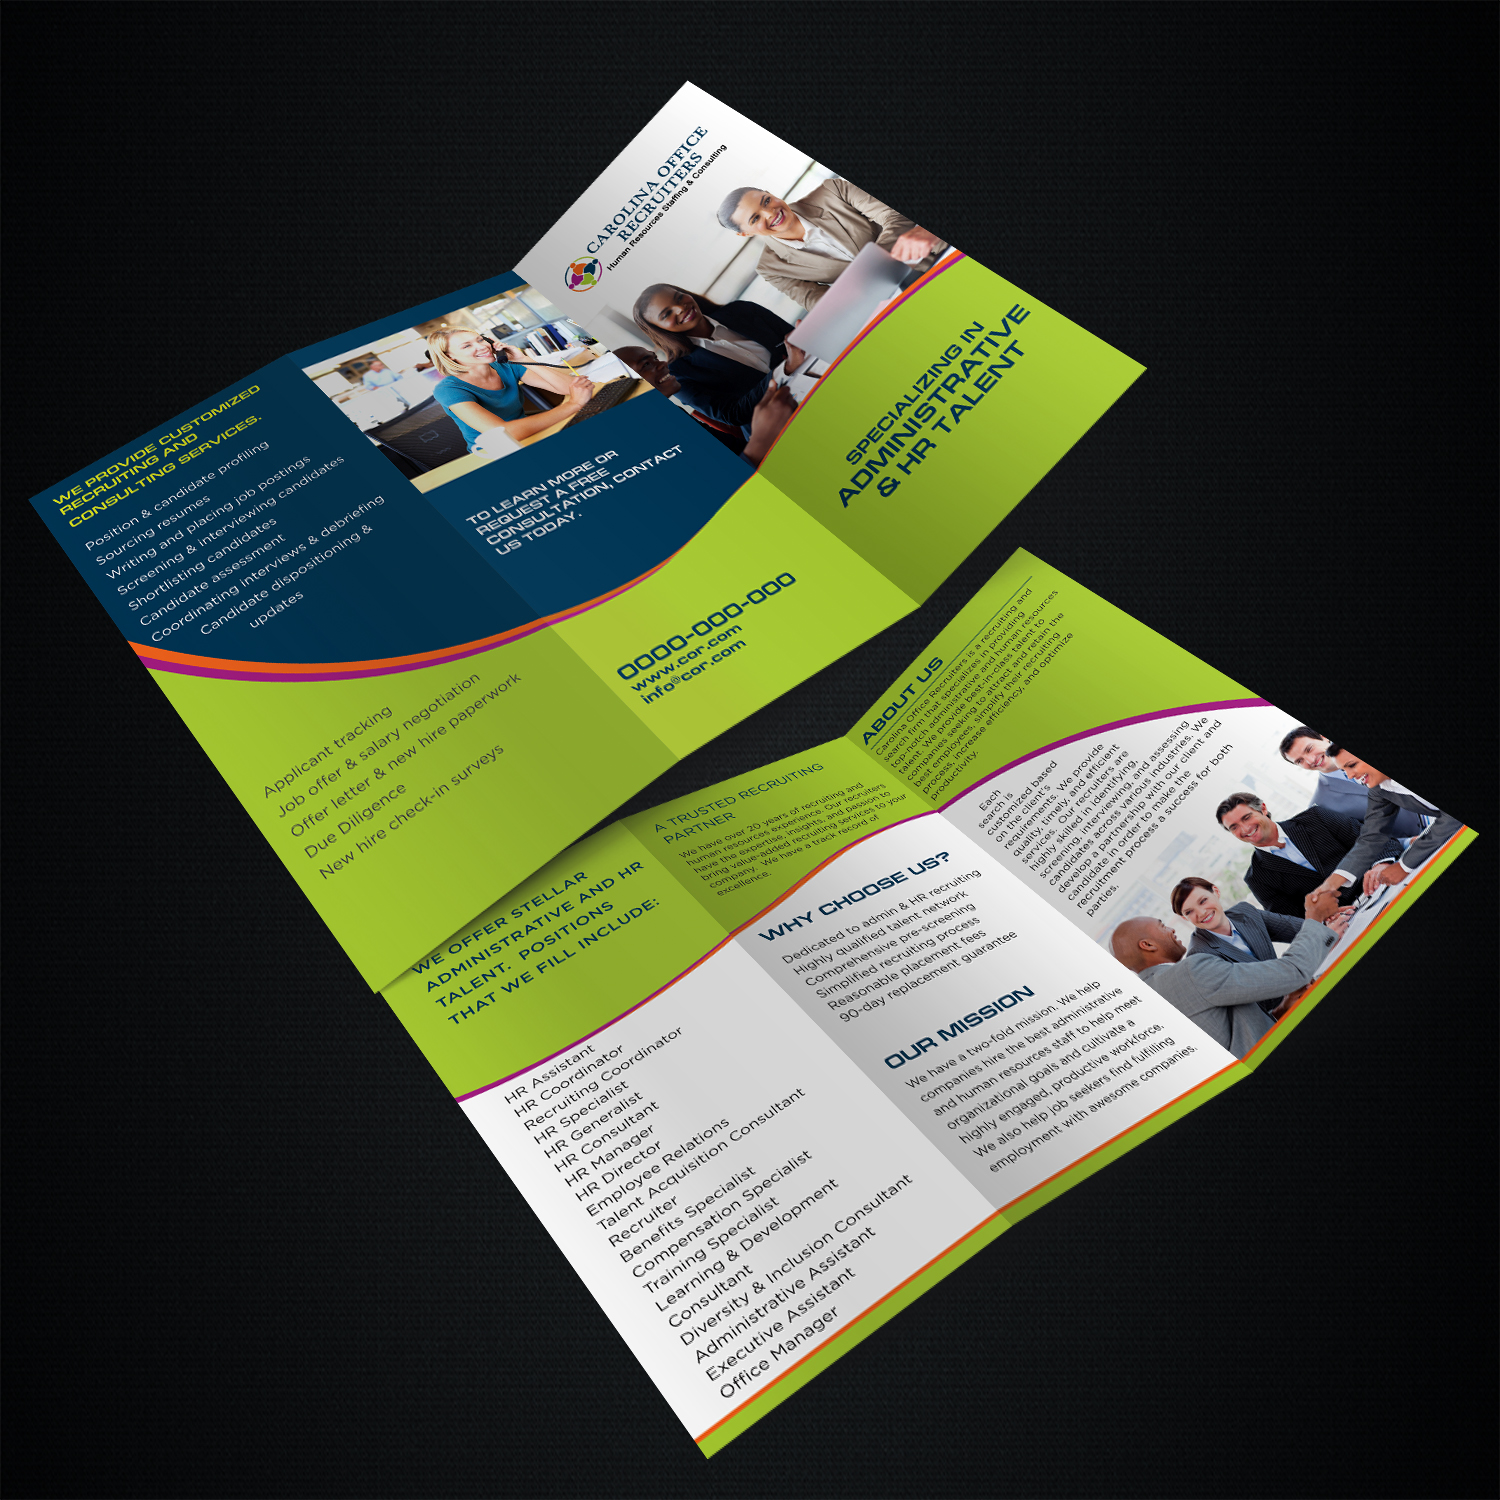 serious bold recruitment brochure design for a company by kreative